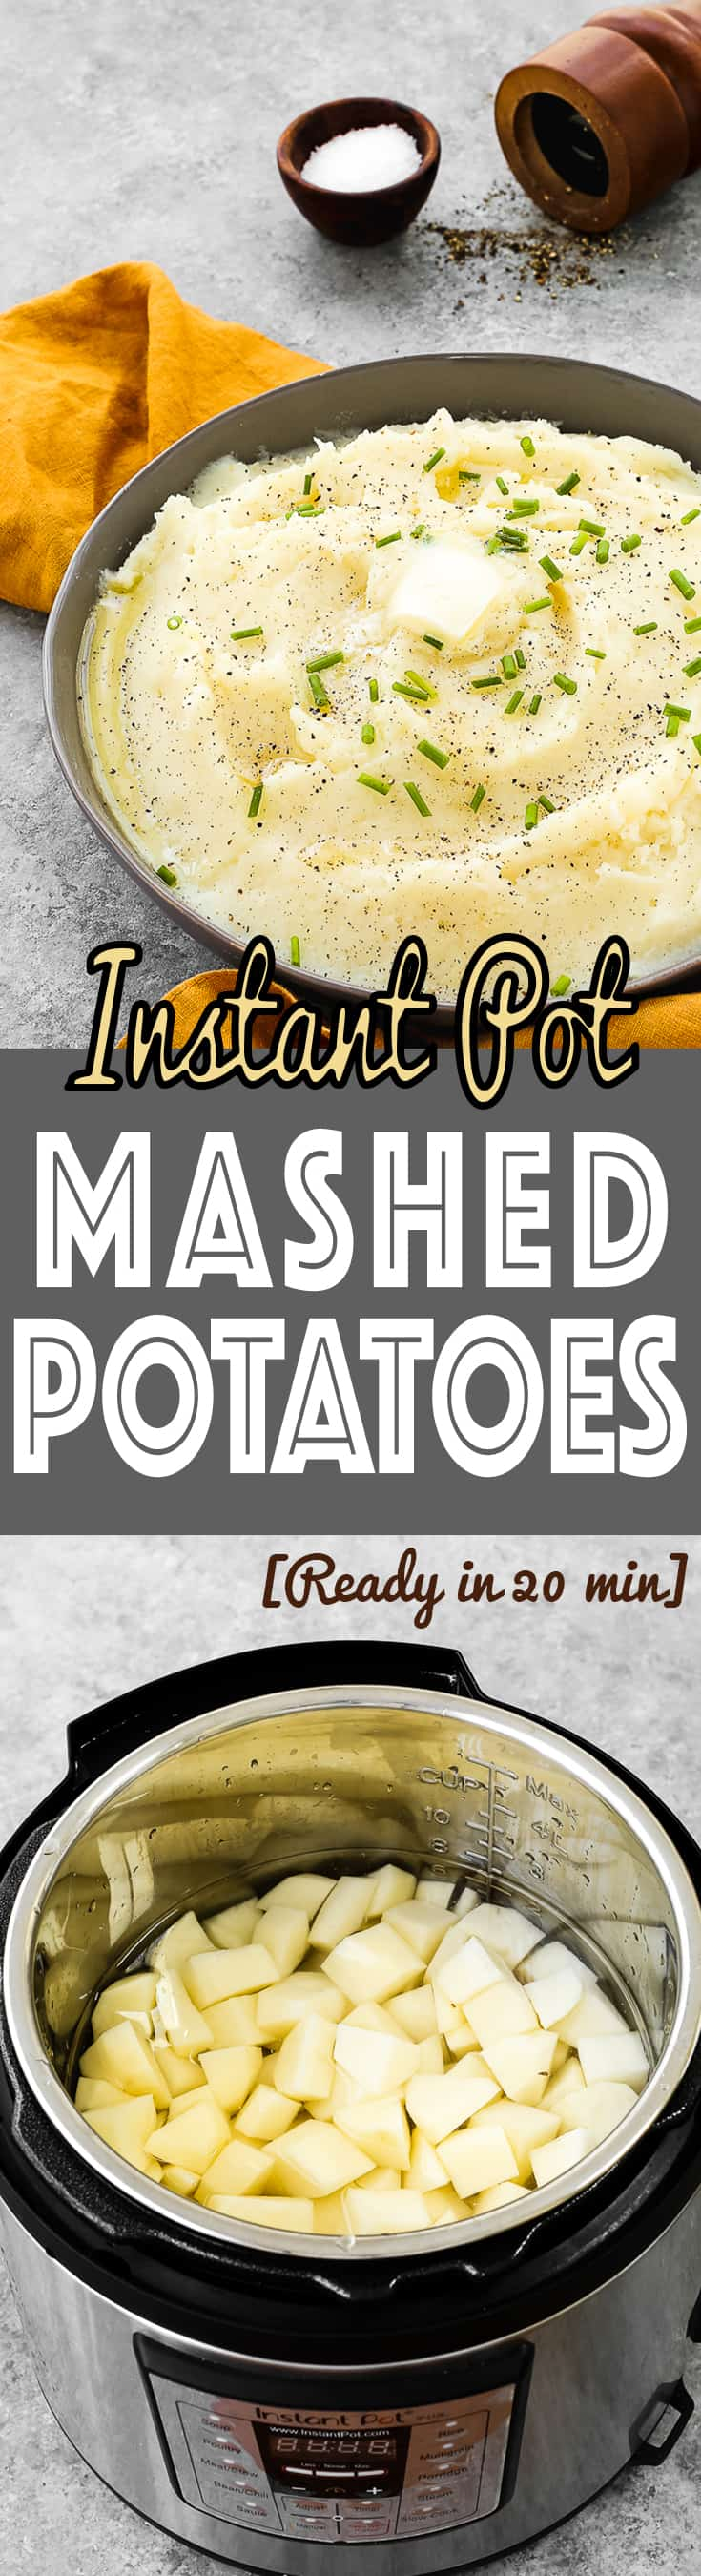 This Instant Pot Mashed Potatoes is creamy, tasty, and just delicious!  It's made with a handful of ingredients, feeds a crowd, and is ready in 20 MINUTES. It also can be prepared ahead of time. http://mommyshomecooking.com